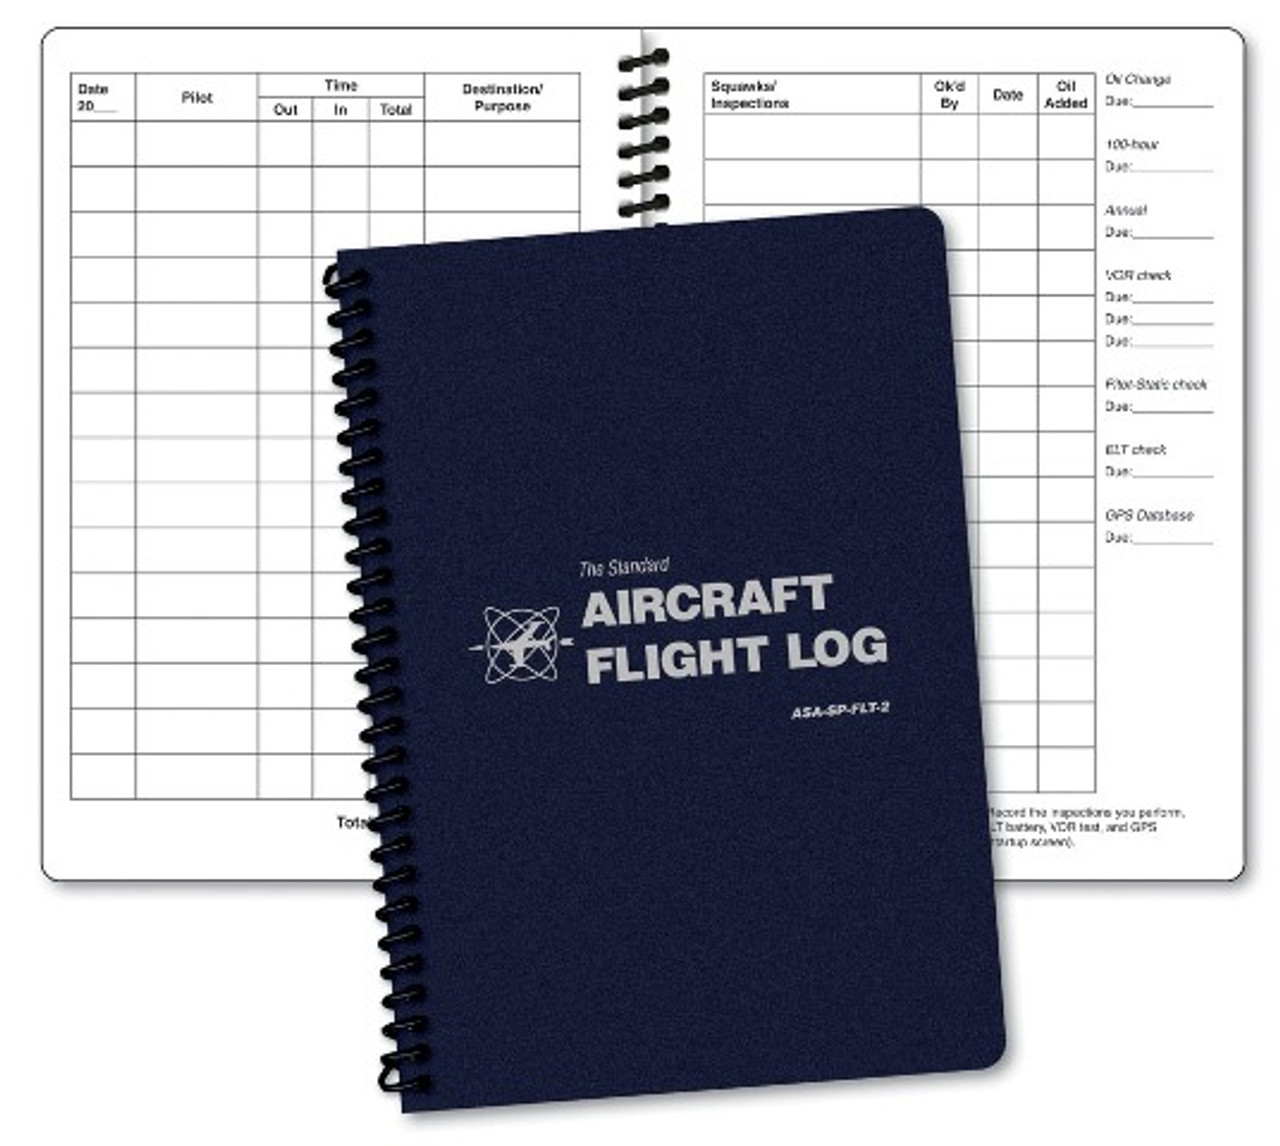 ASA Aircraft Flight Log